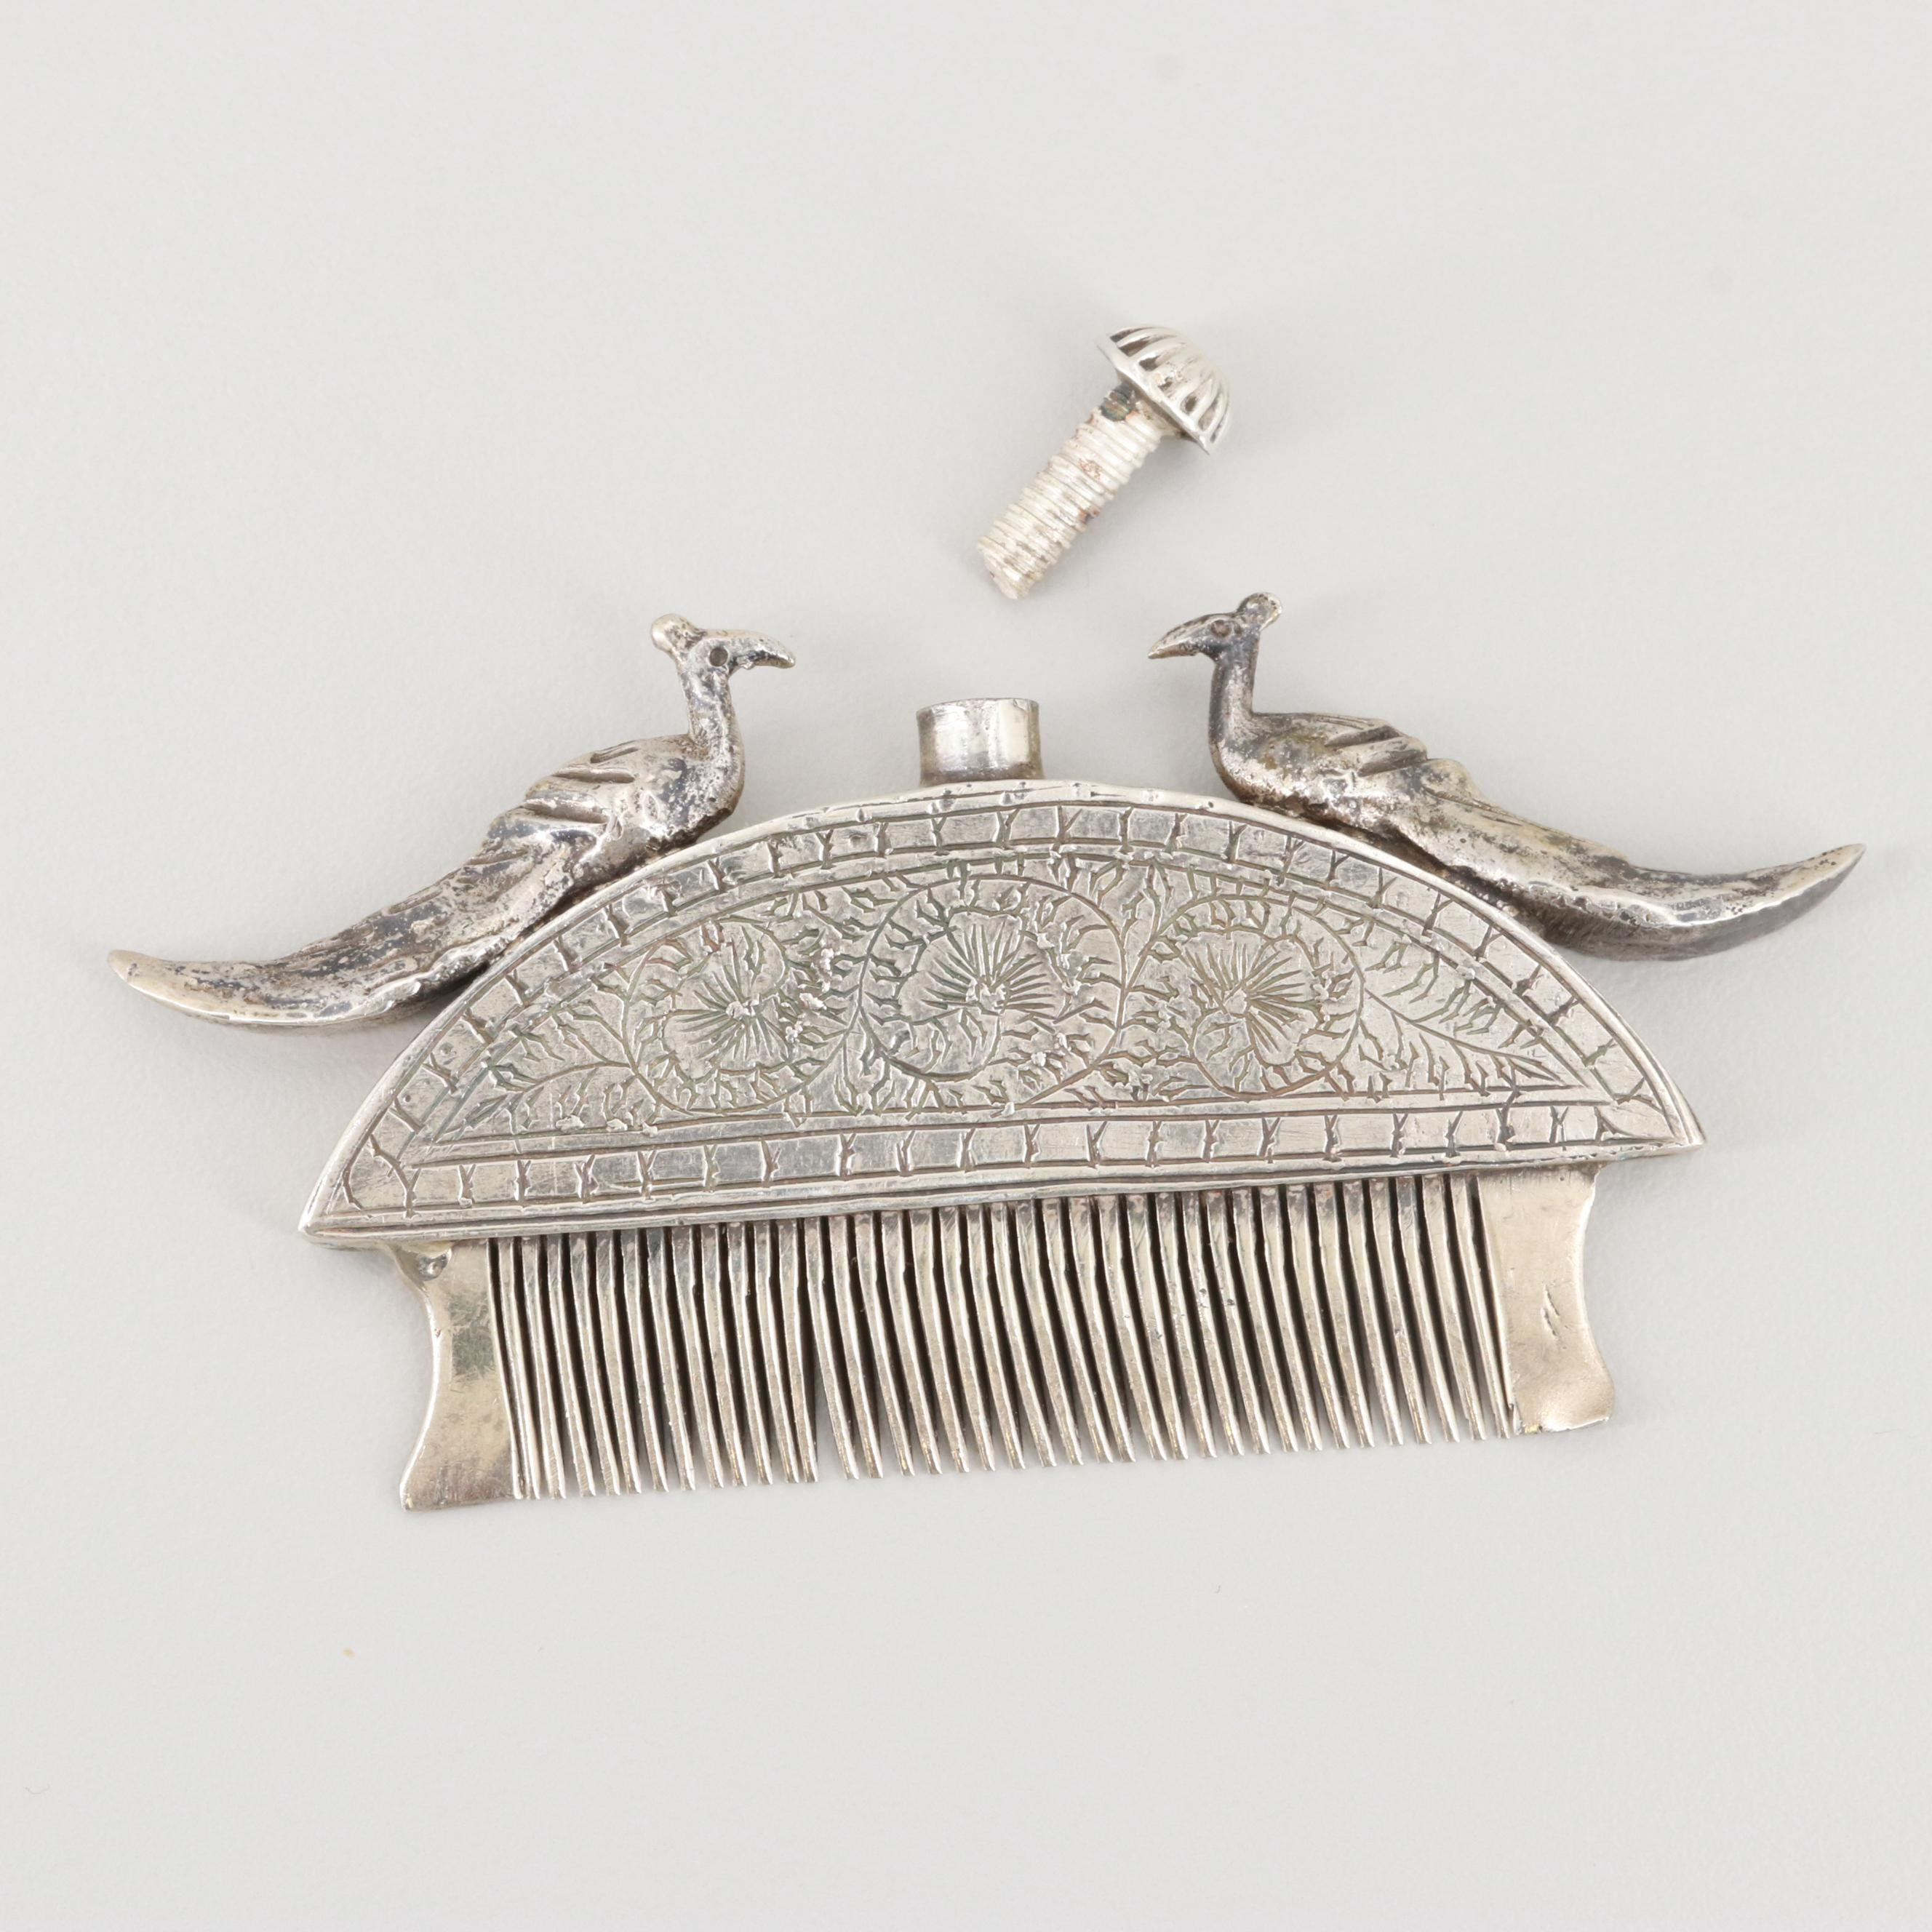 Antique North India Rajasthan 800 Silver Comb with Perfume Resevoir